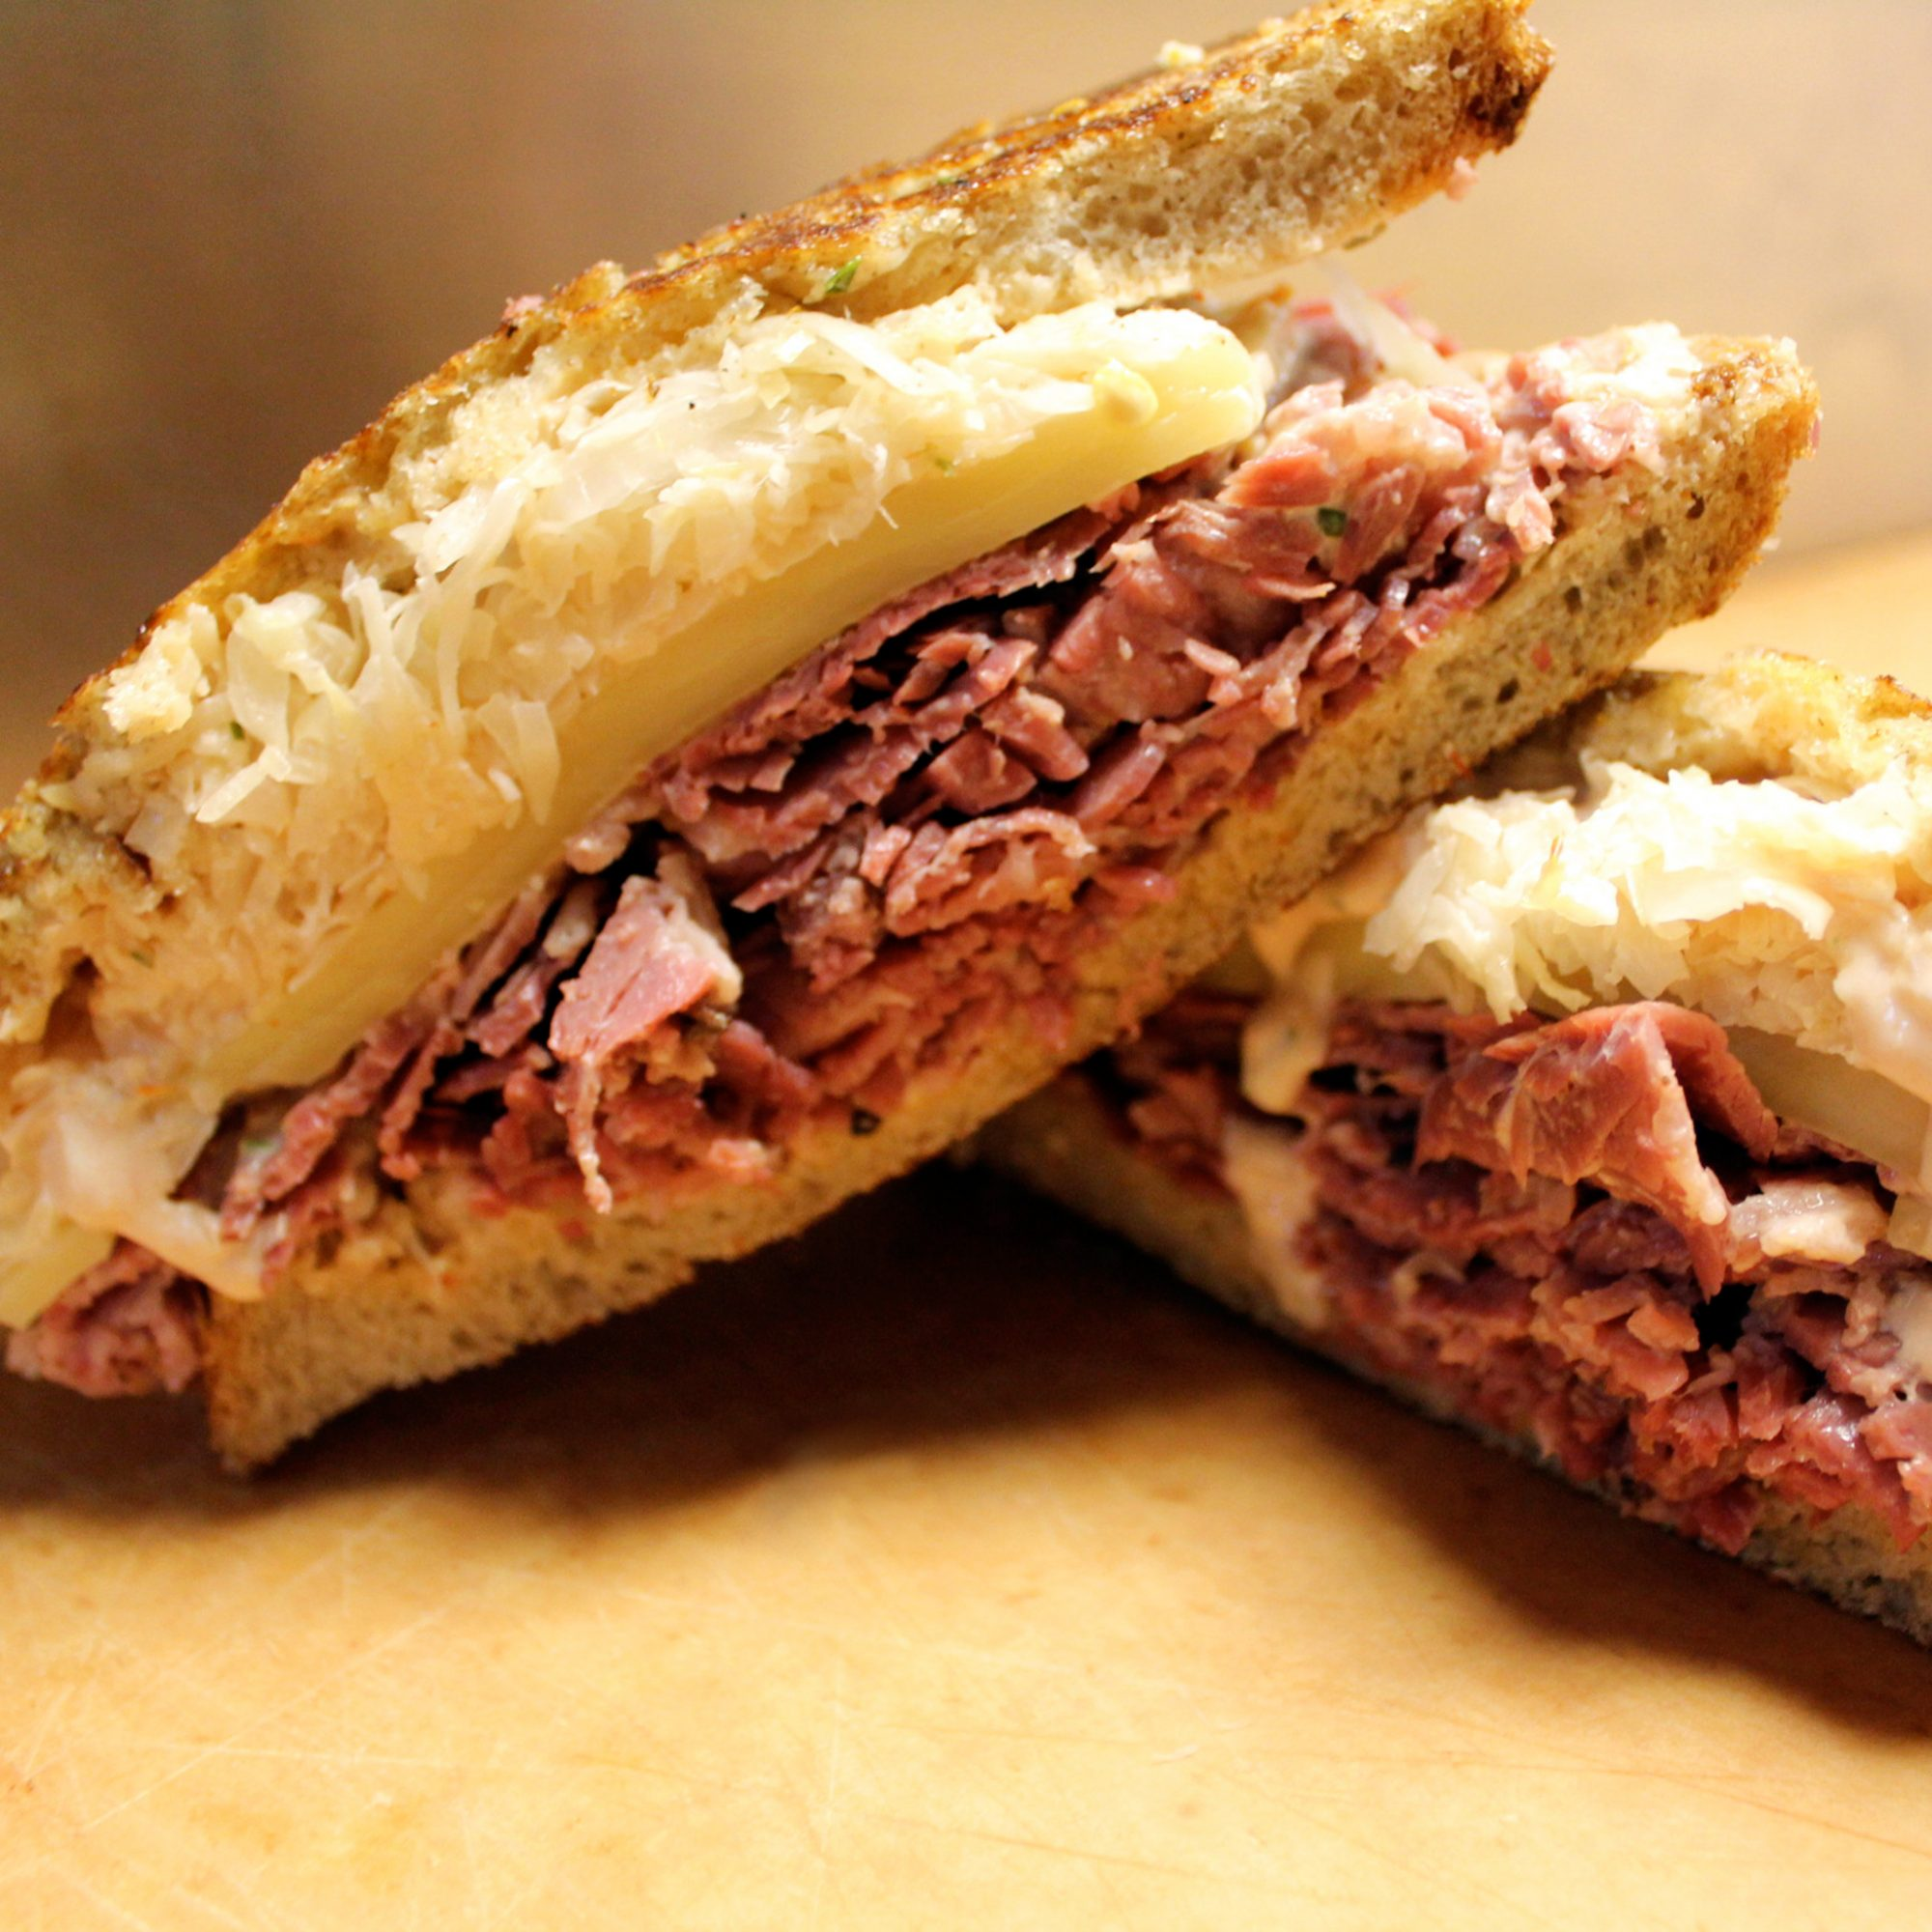 A perfect Reuben from Zingerman's in Ann Arbor, Michigan.